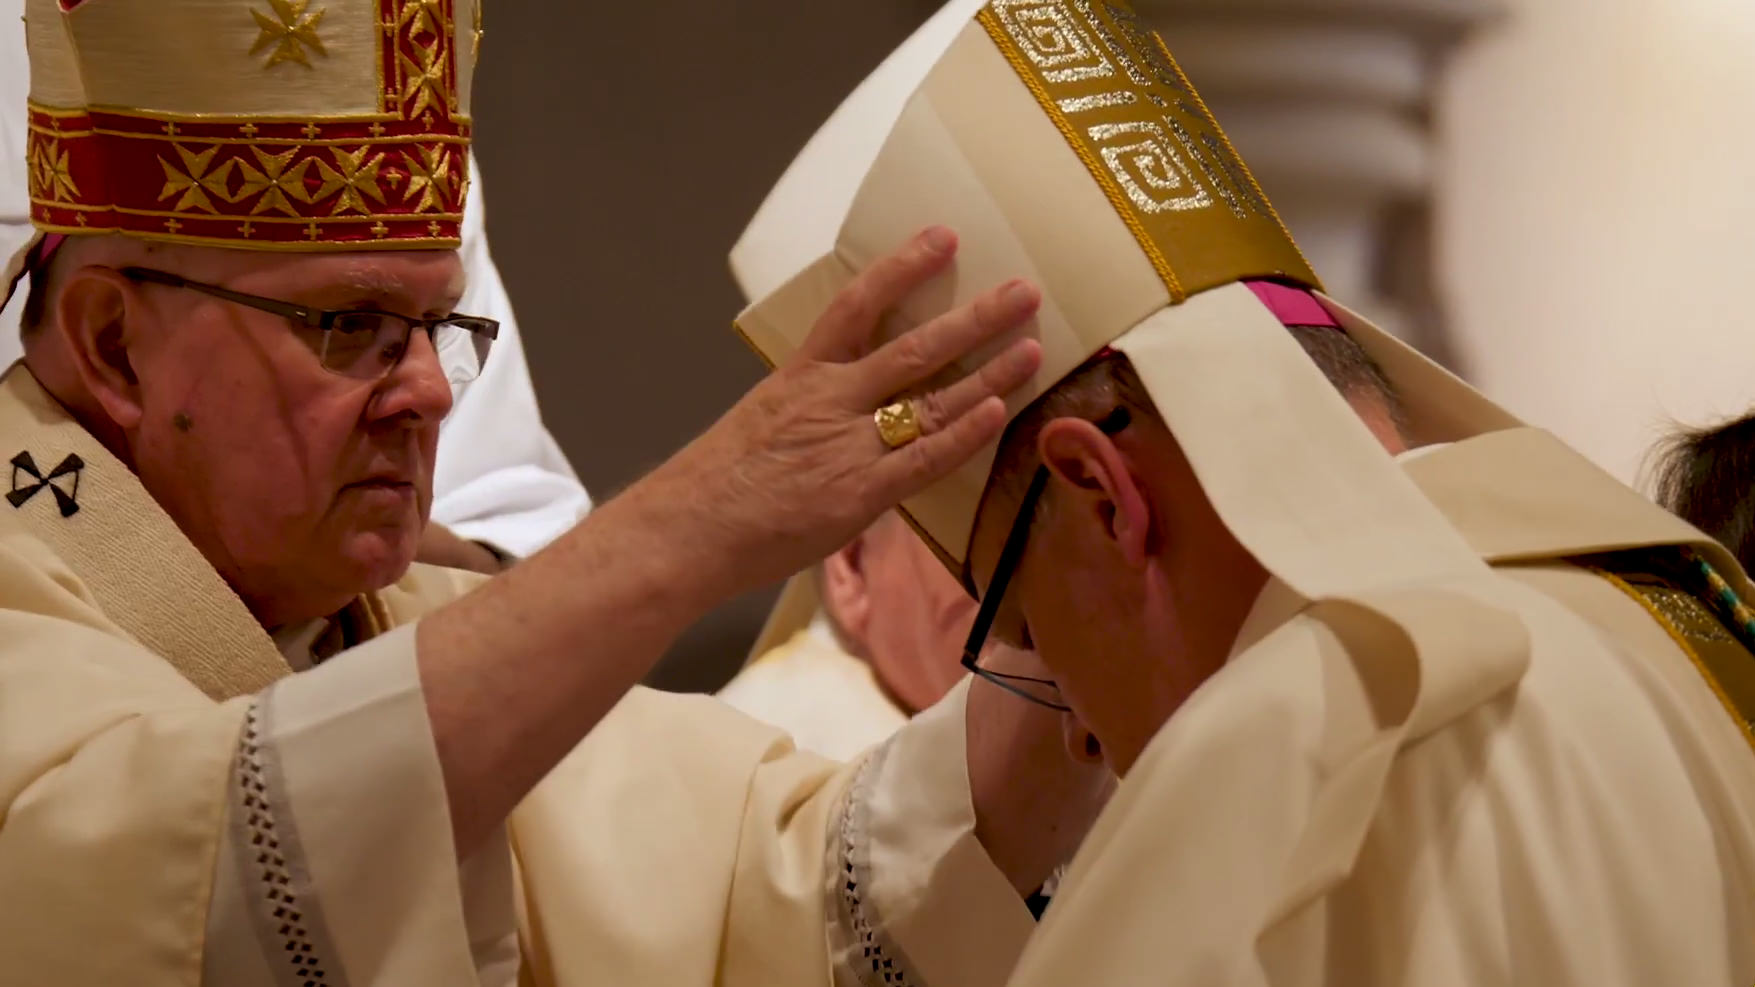 Ordaining Bishop Ken Howell